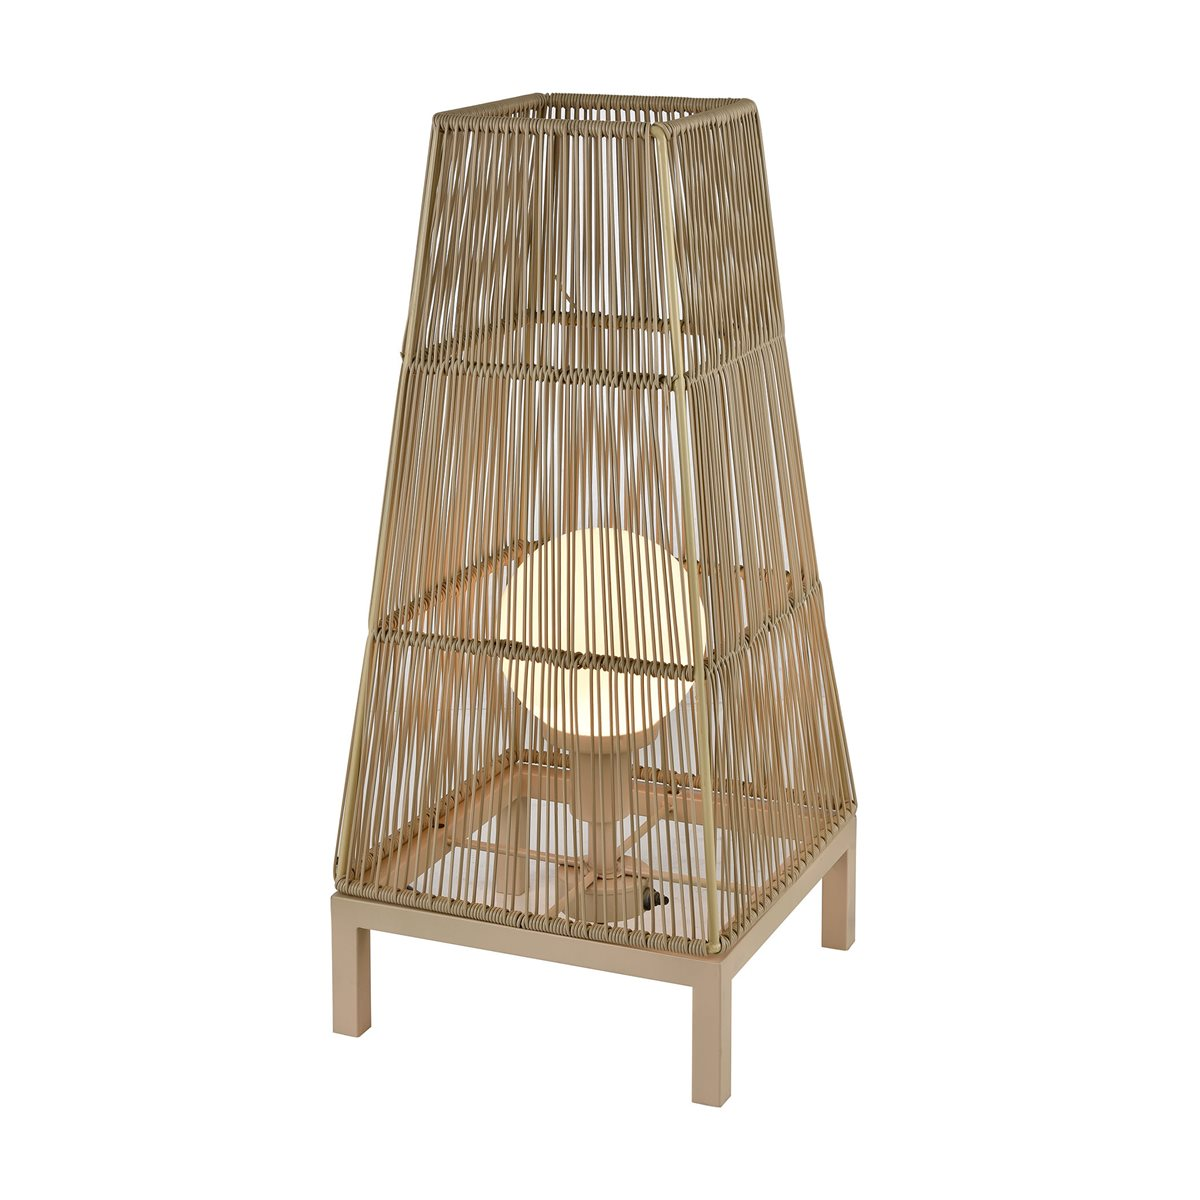 Lovecup Bali Rattan Outdoor Floor Lamp L623